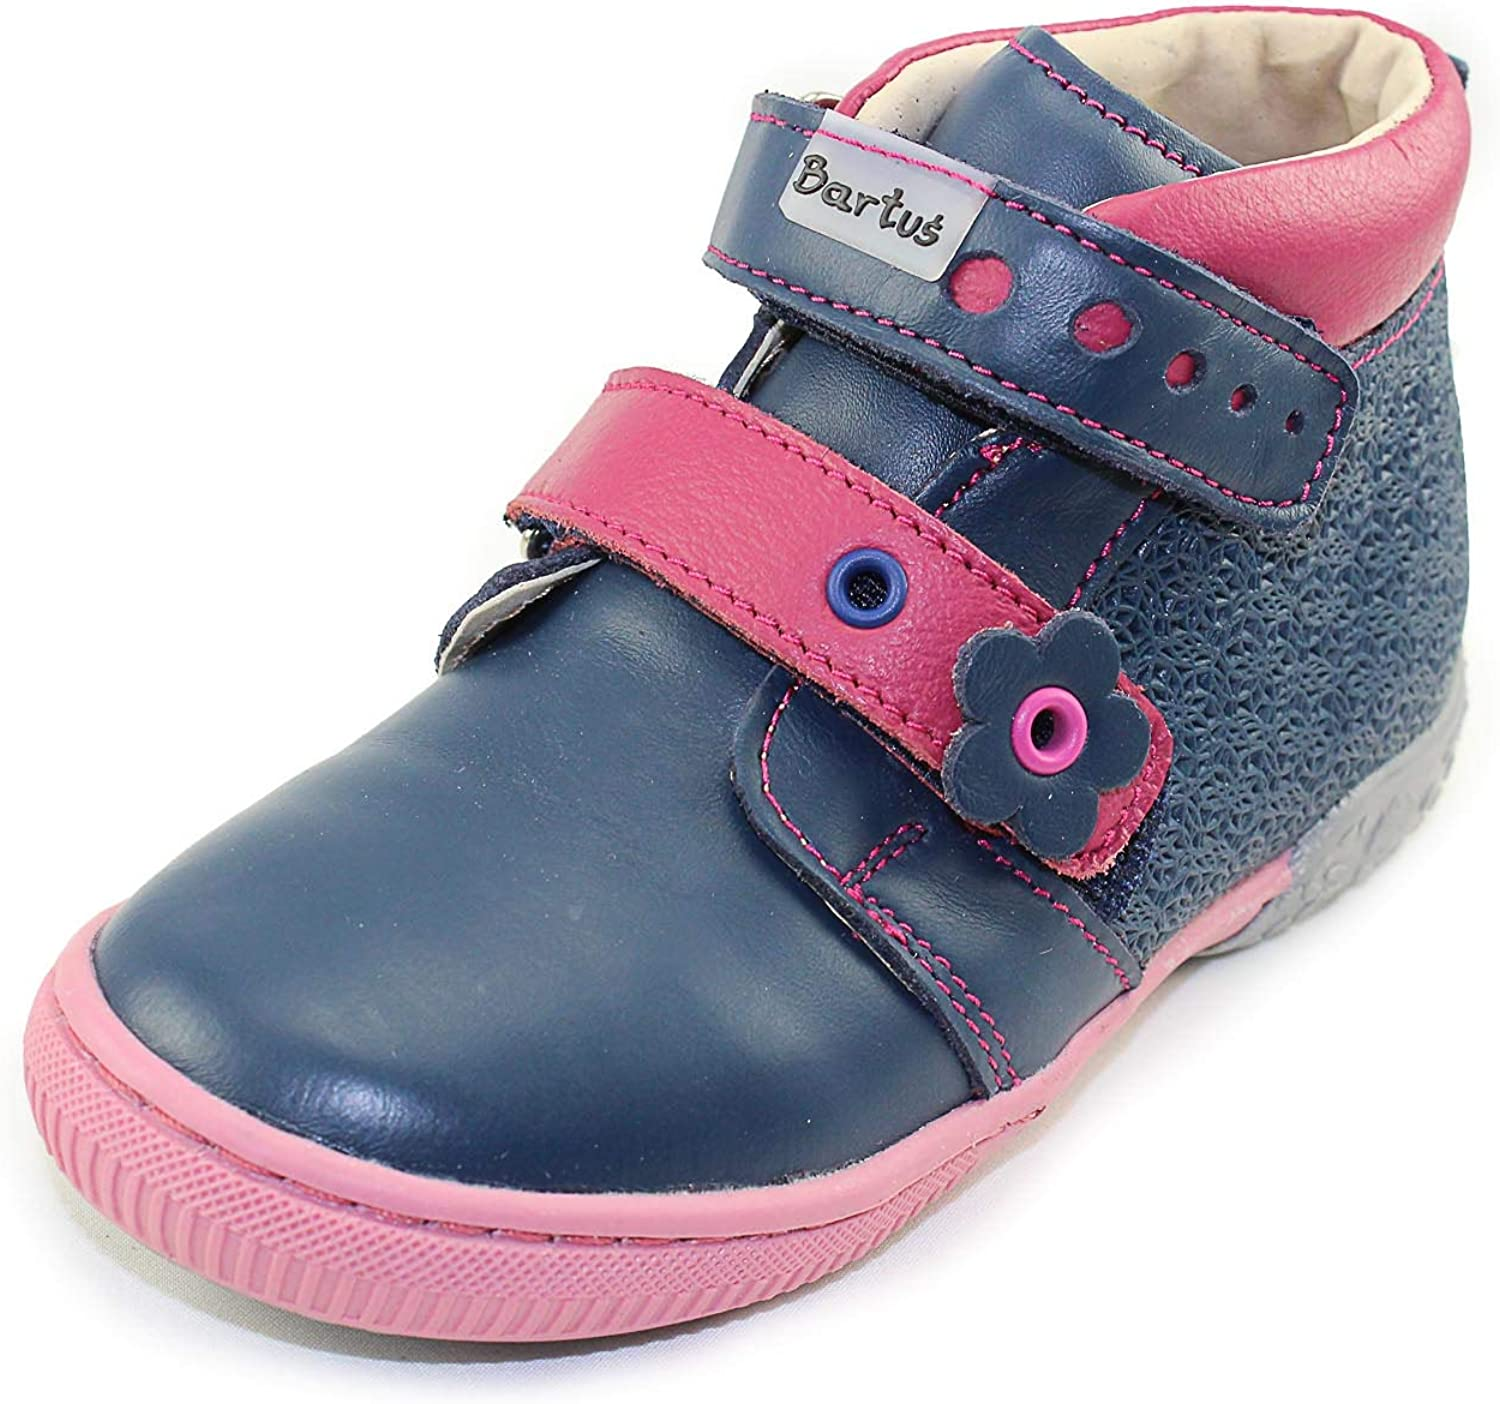 Bartus Girls High Top Leather Shoes